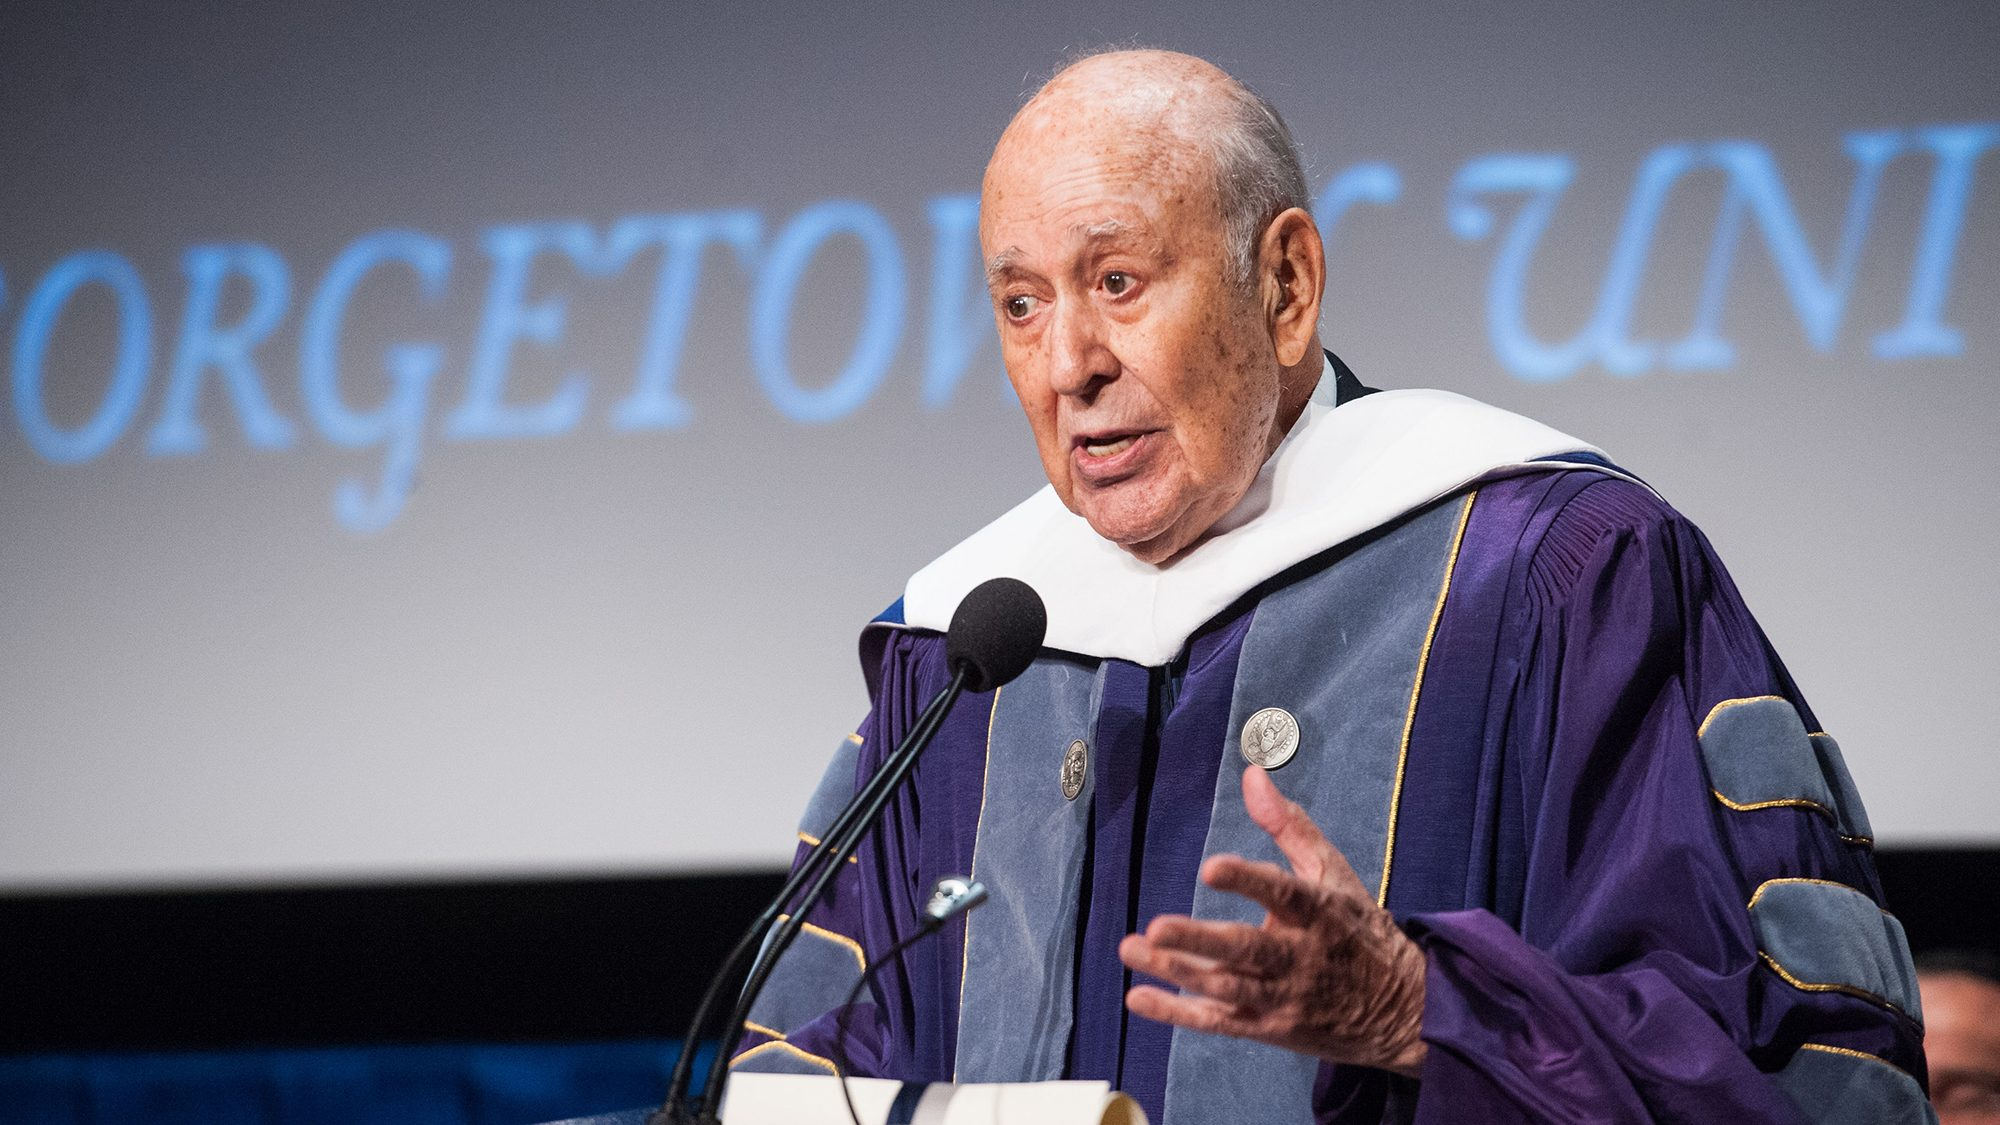 Carl Reiner at a podium wearing academic robs with a screen behind him reading Georgetown University